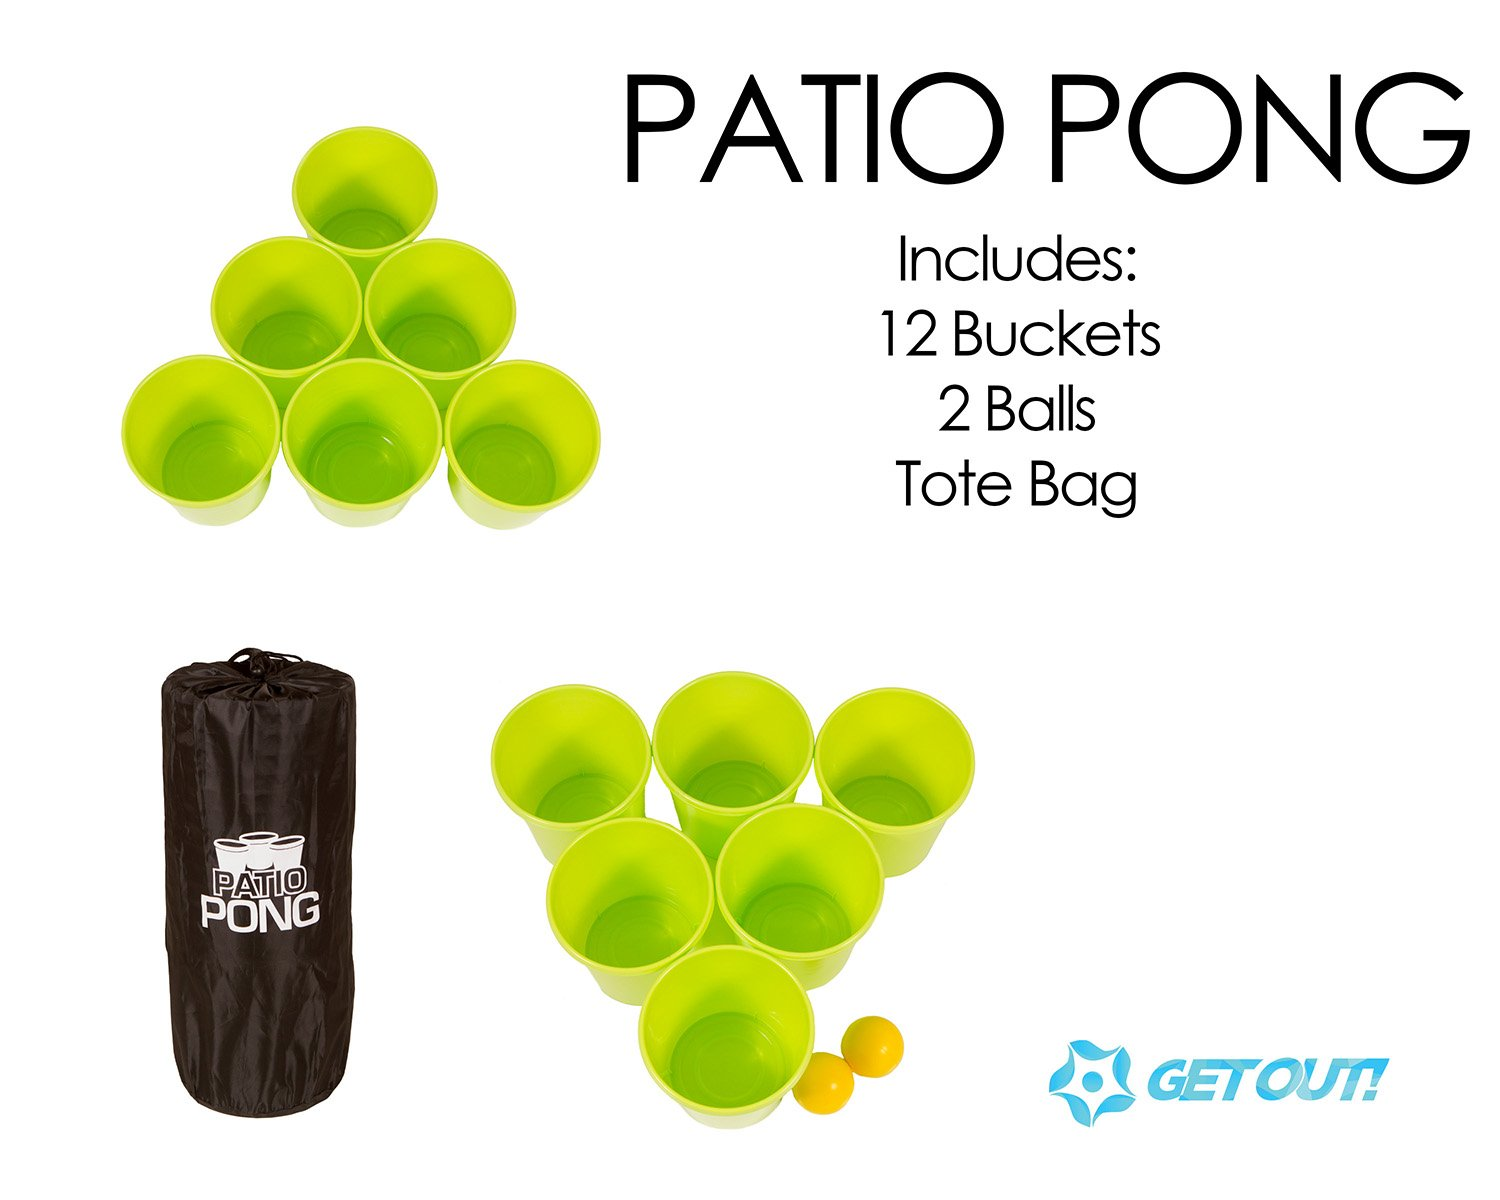 Get Out! Patio Pong – Giant Yard Beer Pong Set for Outdoor Fun – 12 Buckets, 2 Balls, 1 Drawstring Carrying Bag by Get Out! (Image #2)